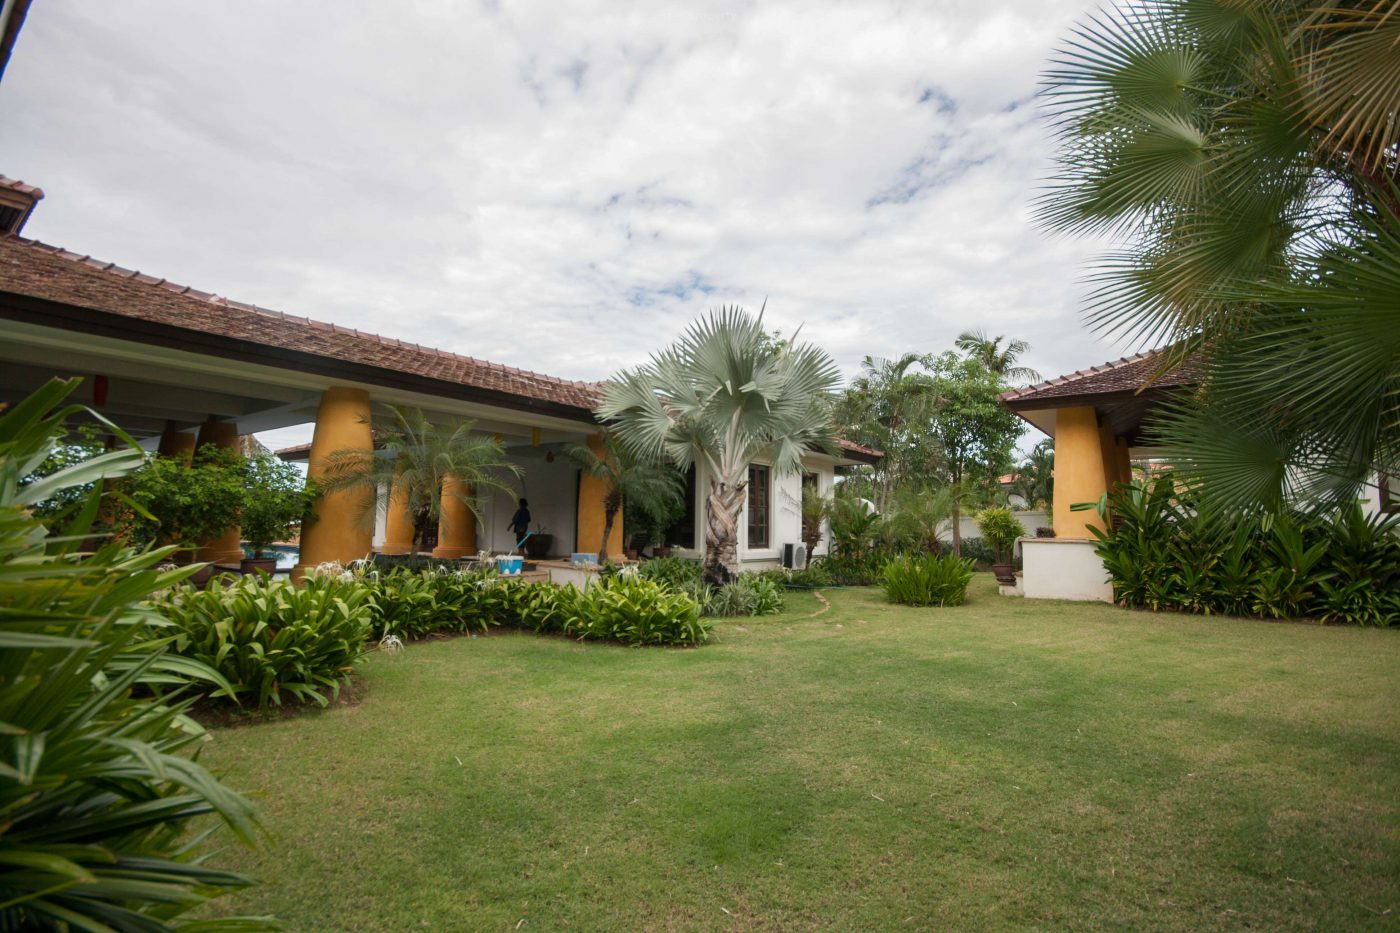 Balinese Style Villa Hua Hin Soi 116 for Rent at 59/122 Hunsa soi116